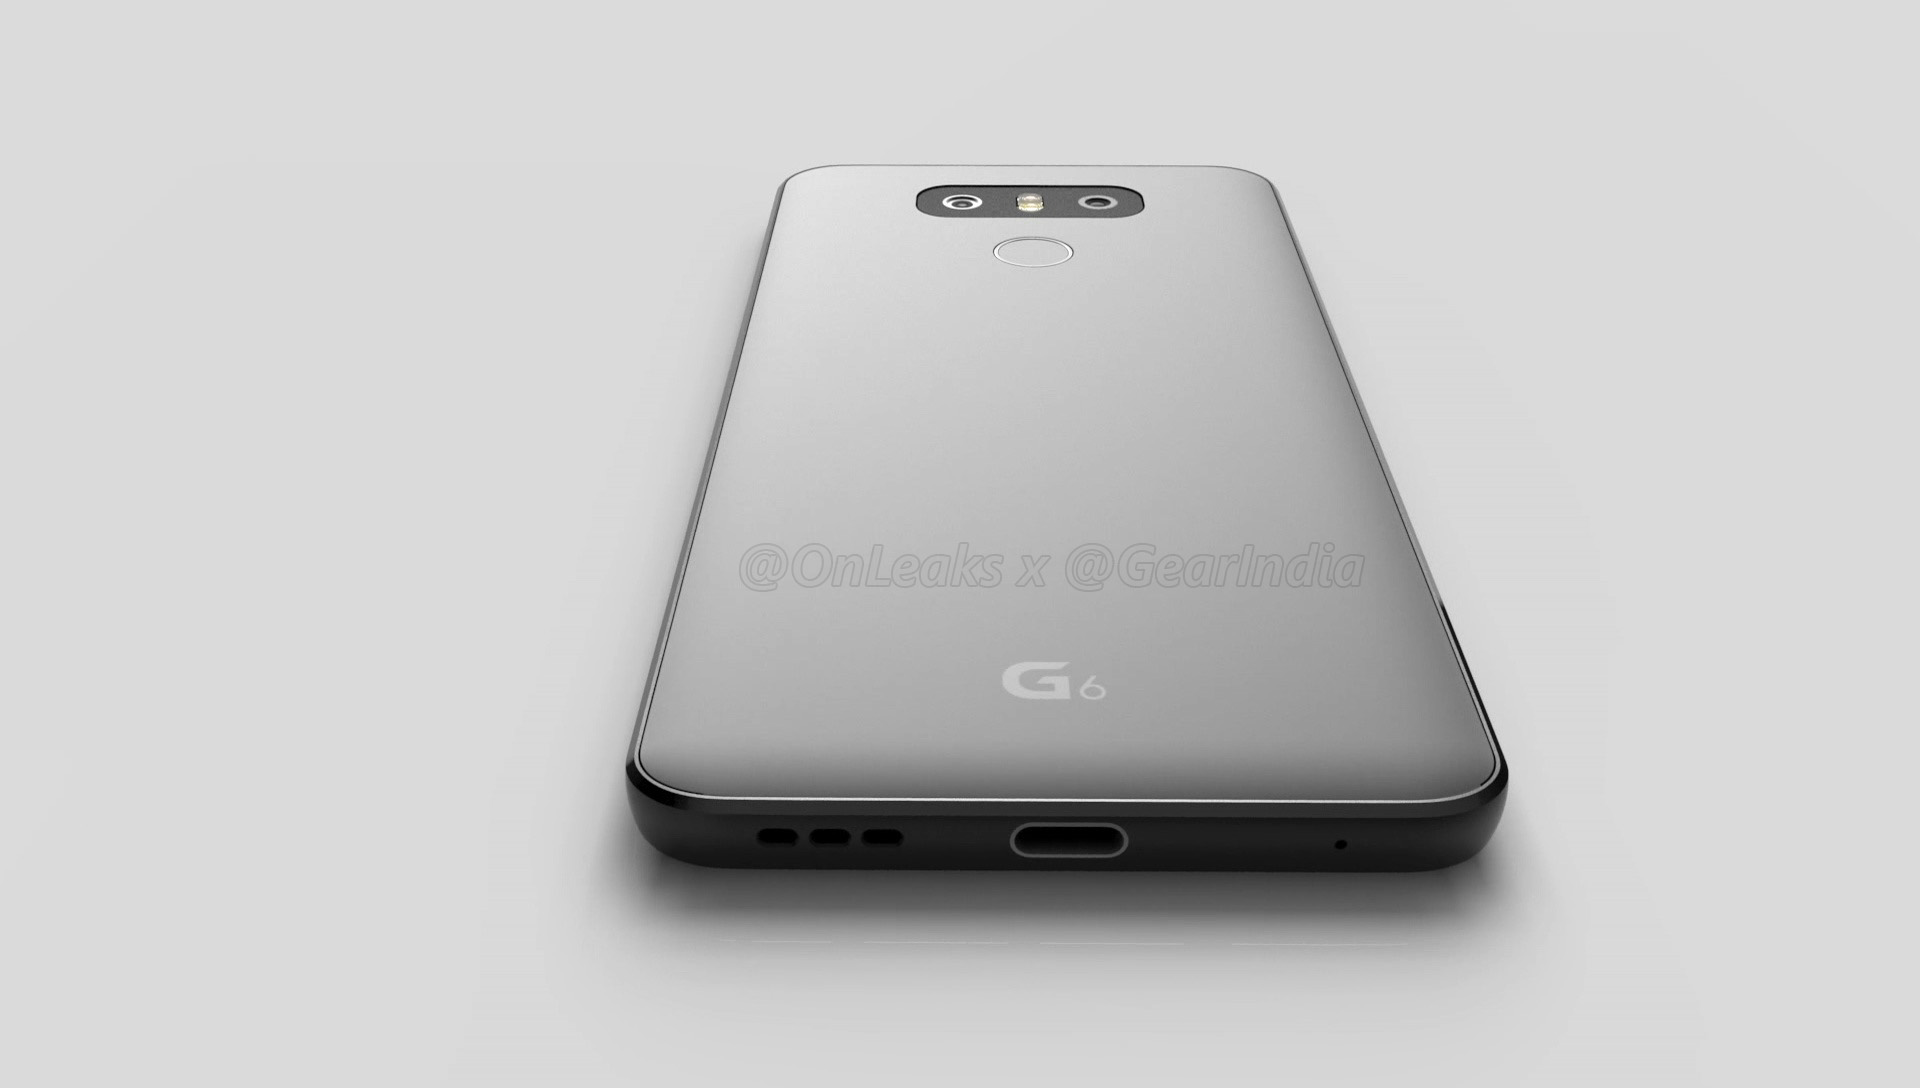 Renders-of-LG-G6-based-on-factory-CAD-images